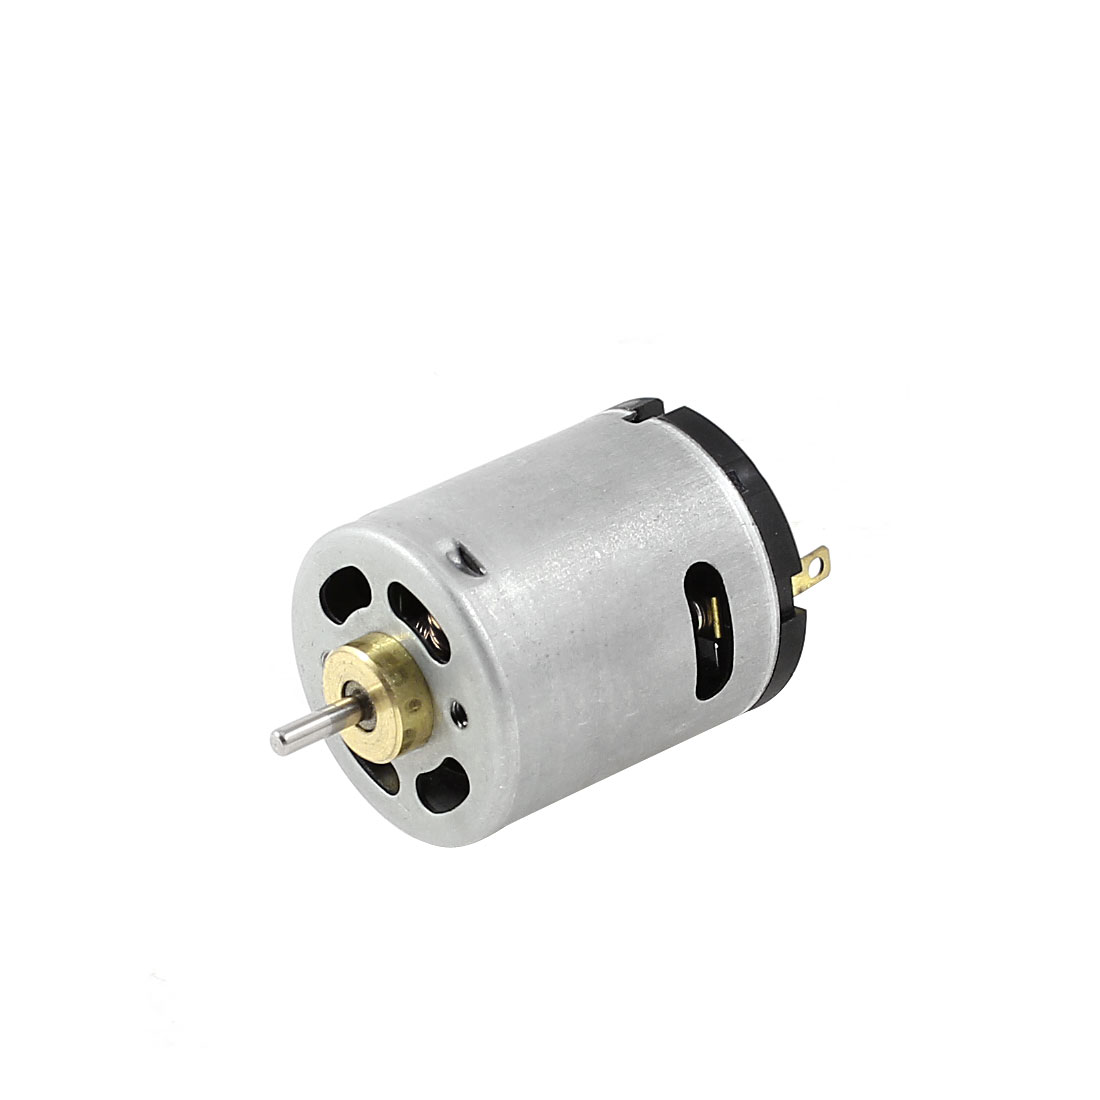 DC 1.5-7.2V 2470-3910RPM High Speed 2 Terminal Electric Magnetic Mini Micro Motor